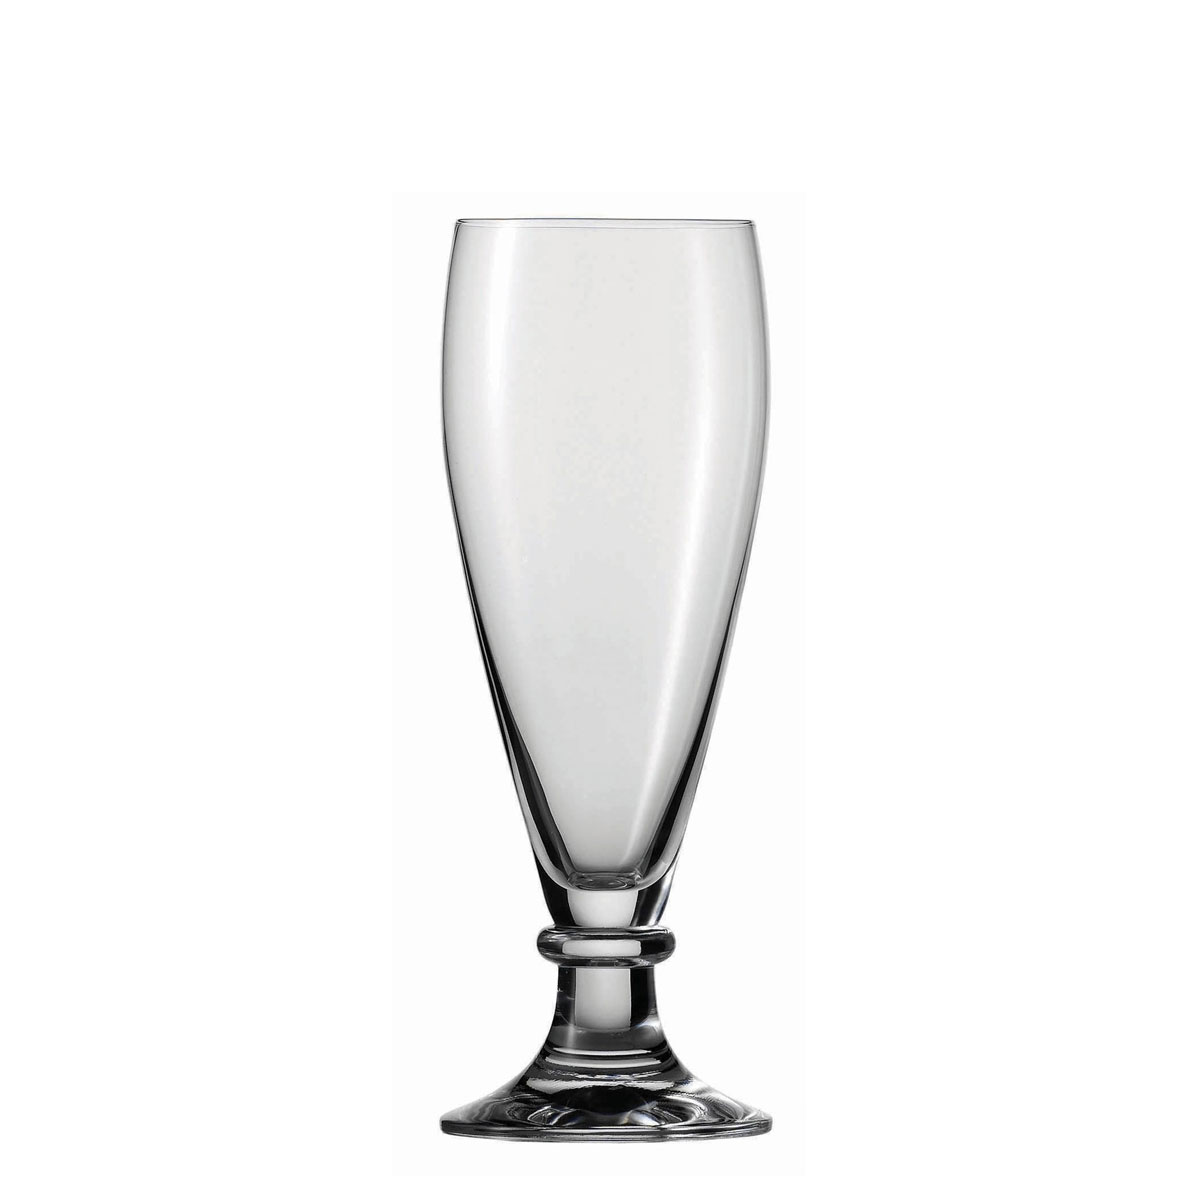 Schott Zwiesel Tritan Crystal, Crystal Beer Brussels Pilsner, Single